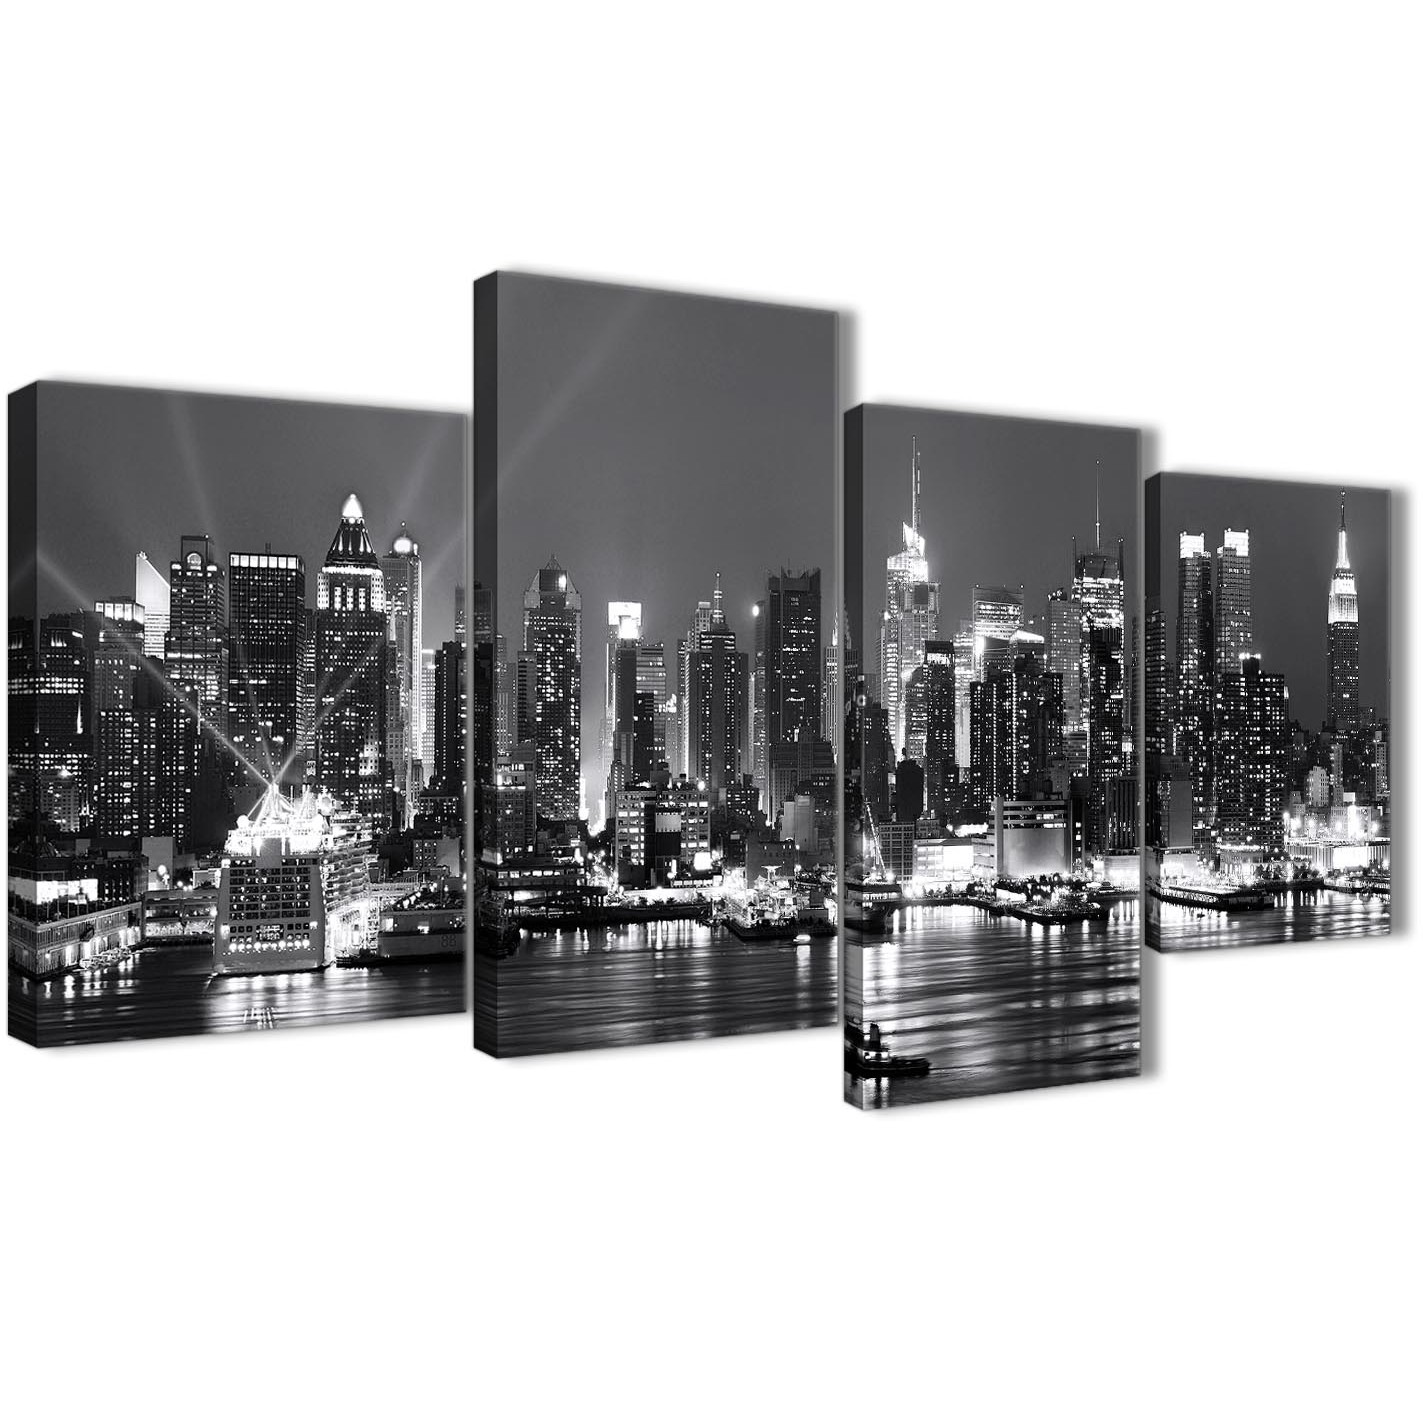 LARGE CANVAS ART PICTURE NEW YORK CITY SCENE ARTWORK